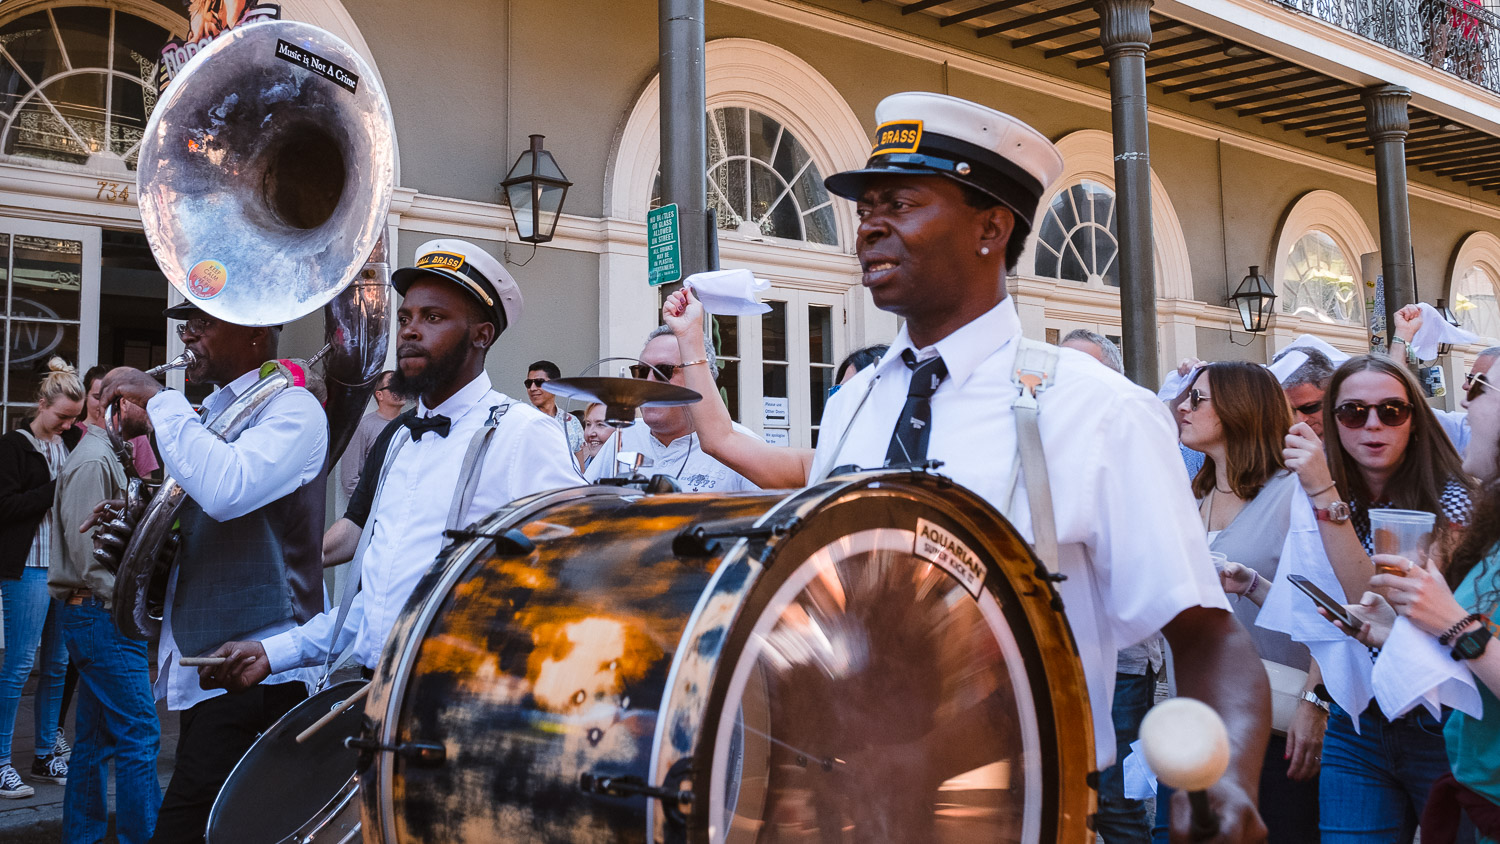 """A second line on Bourbon Street. Travel photography and guide by © Natasha Lequepeys for """"And Then I Met Yoko"""". #neworleans #nola #travelguide #photoblog #travelblog #travelphotography #travelitinerary #fujifilm #usa #visitnola #weekendgetaway #travel #neworleans3dayitinerary #streetphotography #secondline #jazz #music #celebrate #parade #bourbonstreet"""